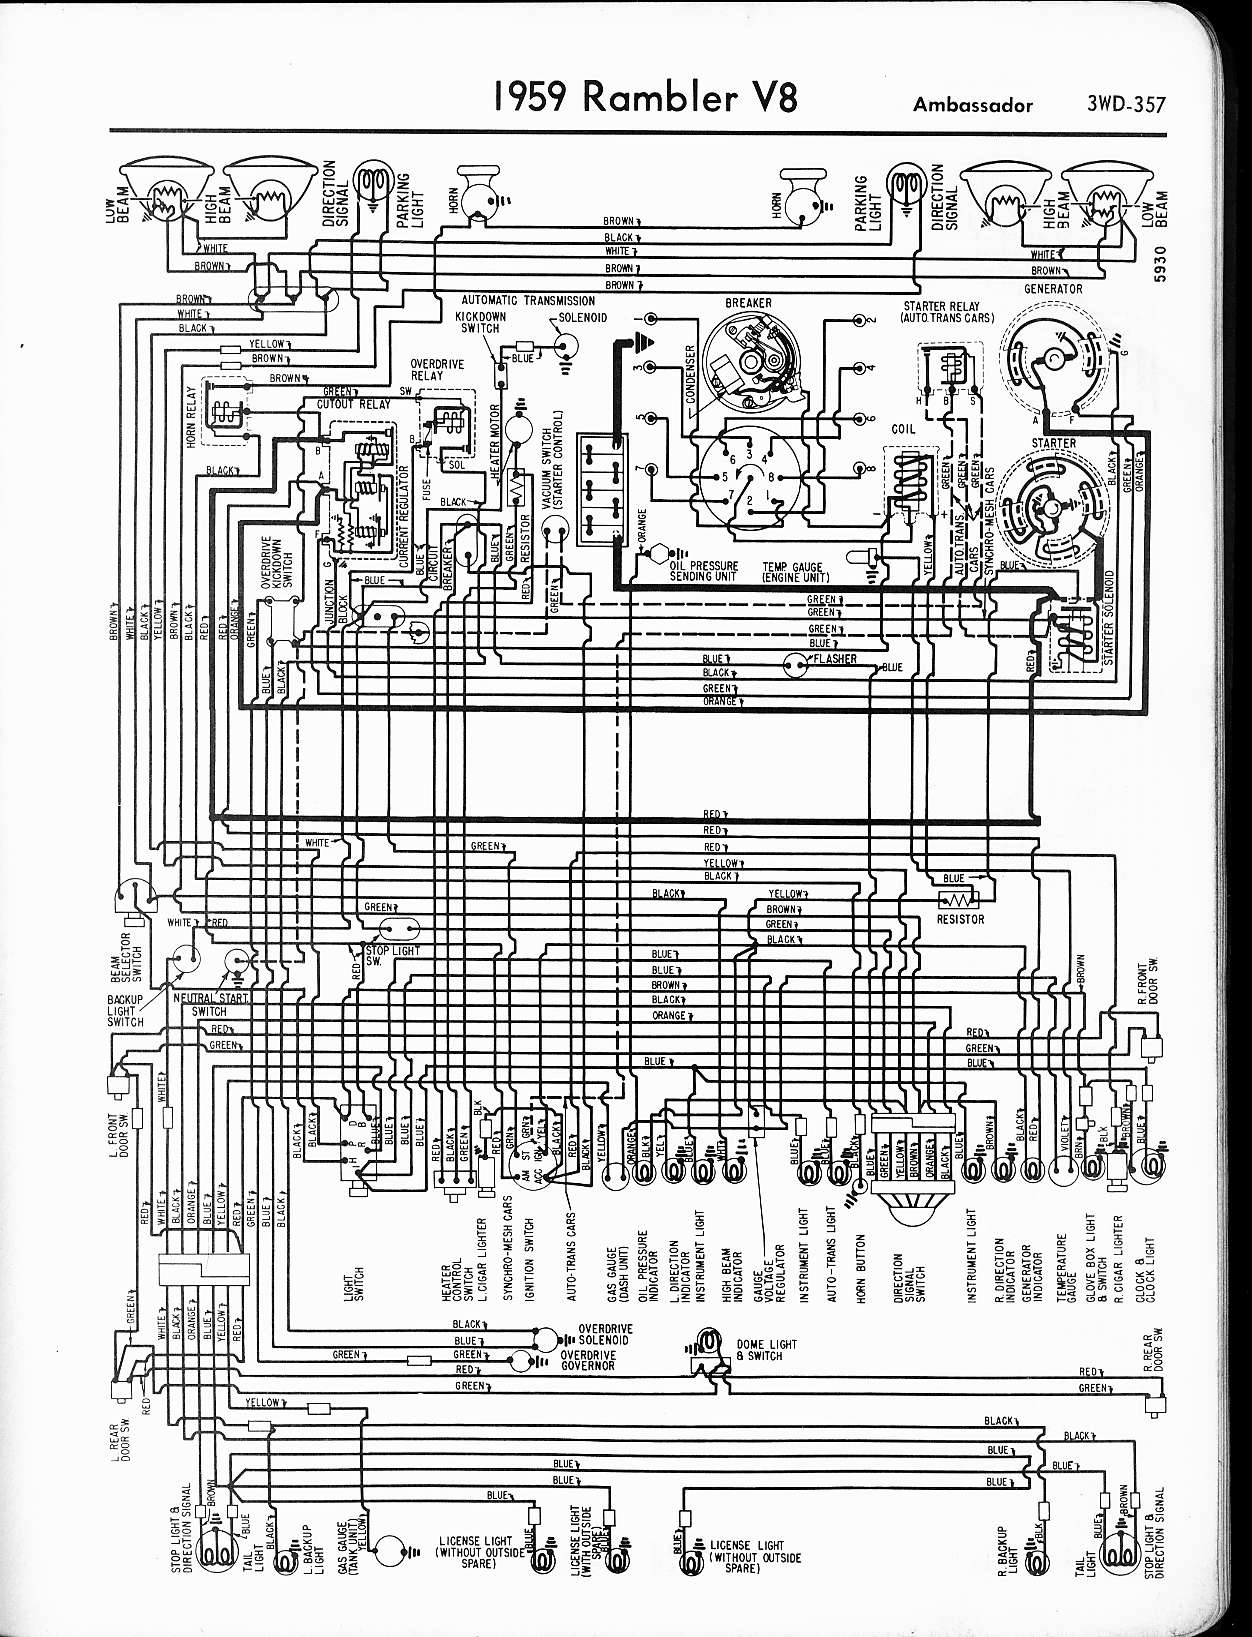 rambler wiring diagrams the old car manual project rh oldcarmanualproject com 1968 AMC Rebel Parts 1968 AMC Rebel Parts